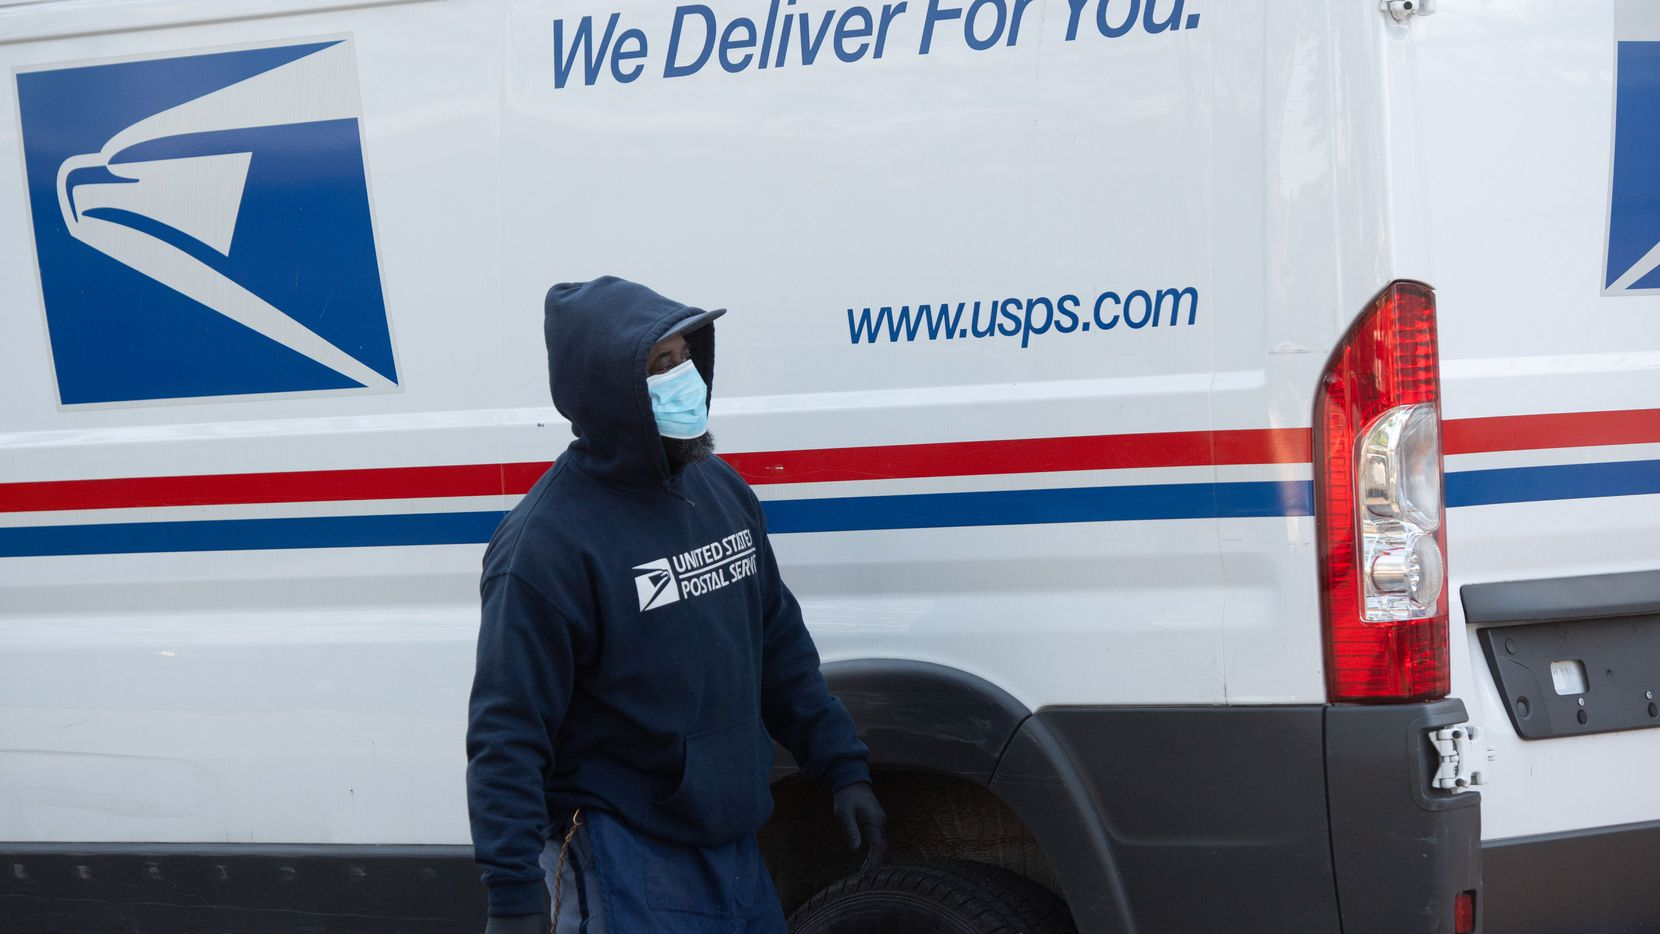 A postal worker wearing a mask and gloves to protect himself and others from COVID-19 loads packages at a Postal Service facility in Washington, DC, April 16, 2020.